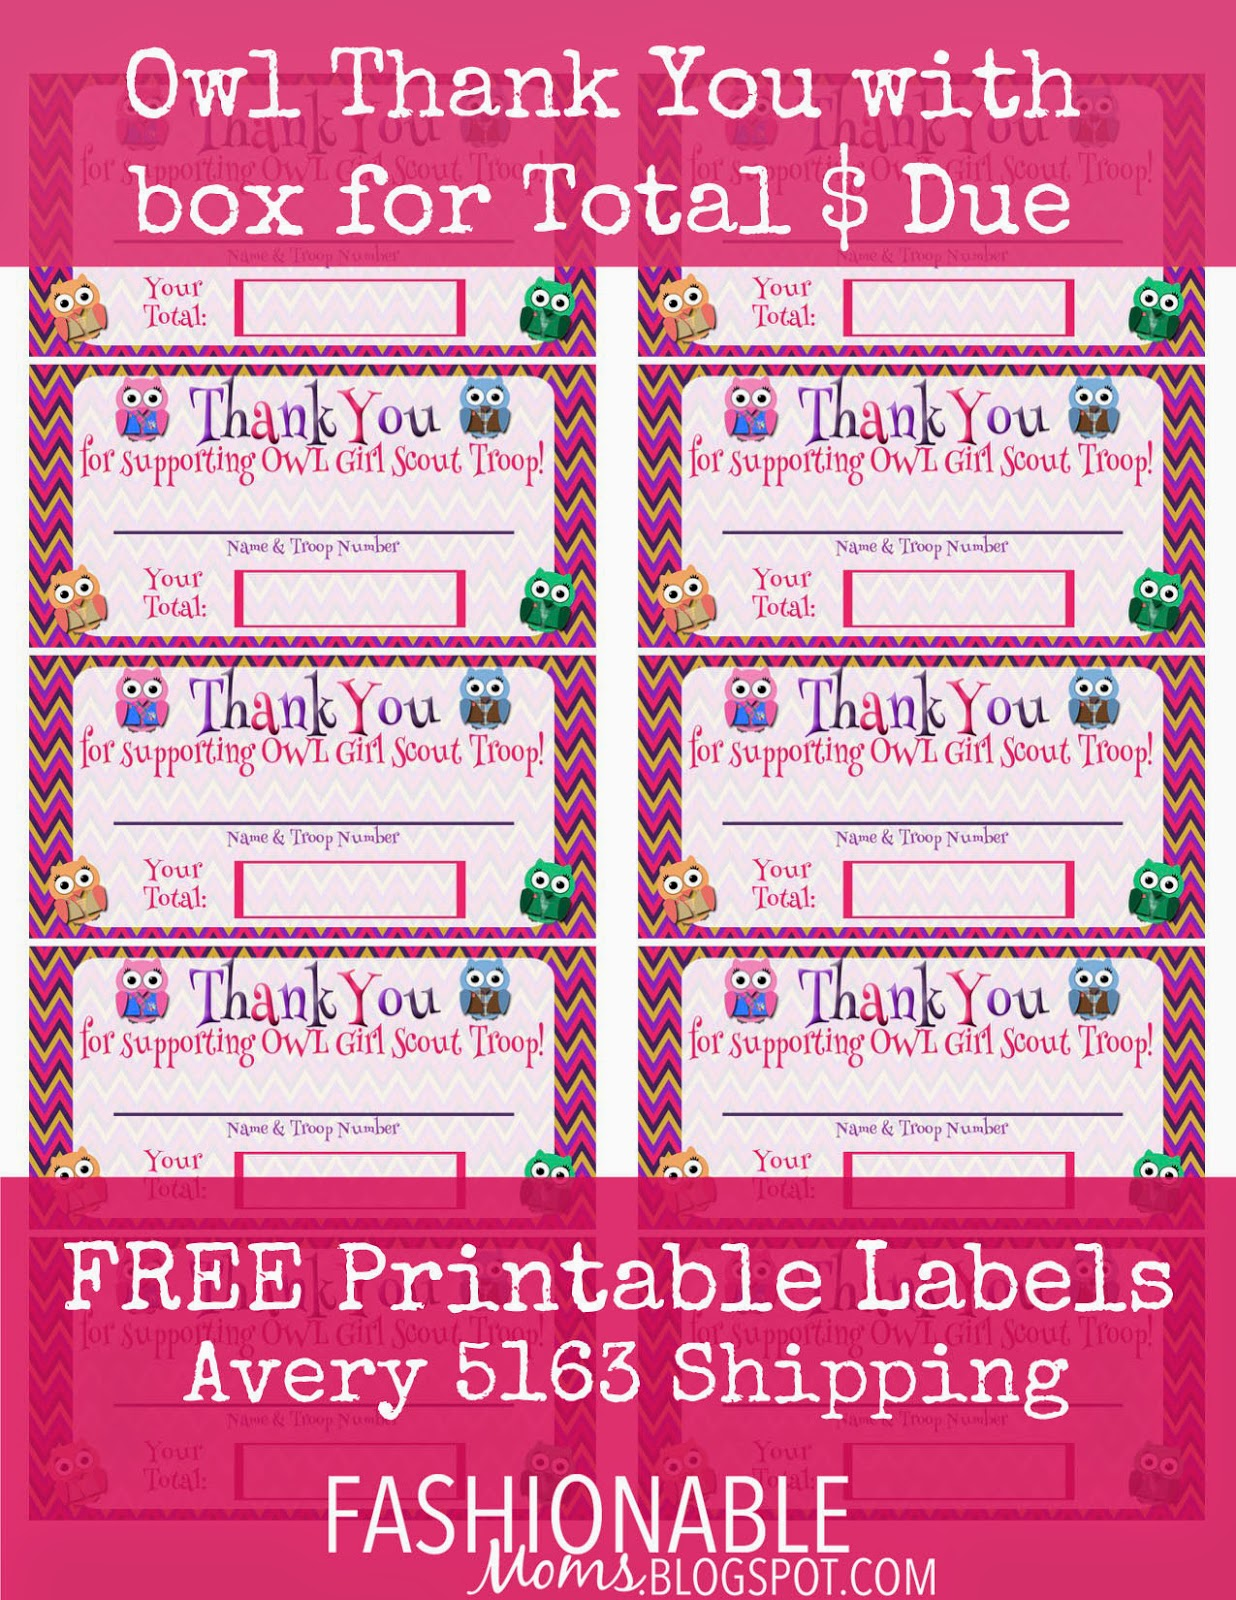 My Fashionable Designs Free Printable Owl Thank You